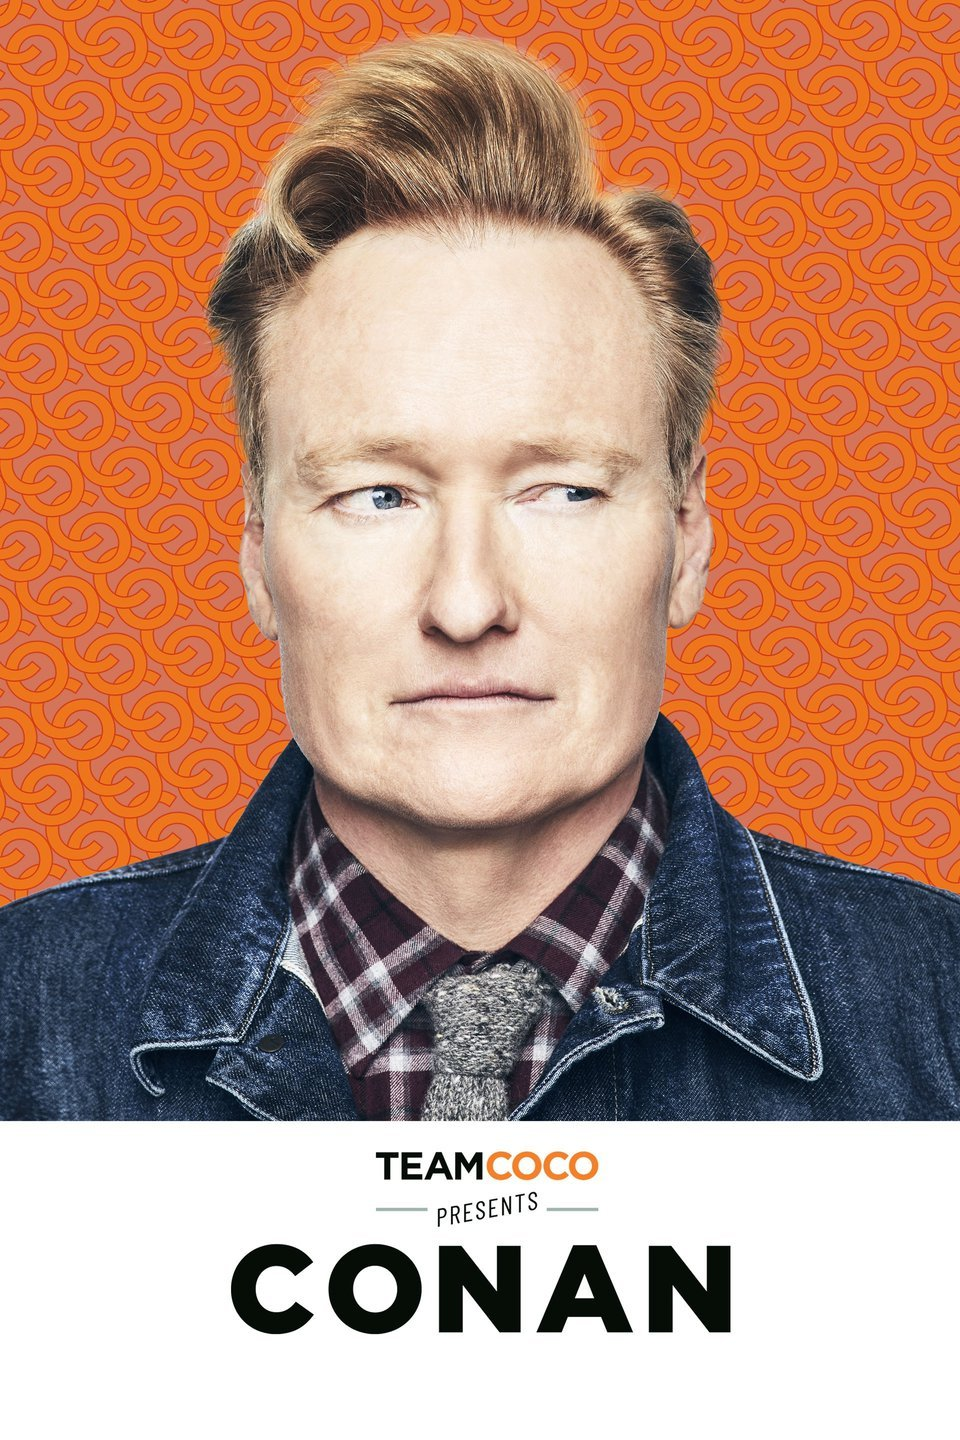 Team Coco -- Late Night with Conan O'Brien airs nightly on TBS, you can see Conan and his guests participate in interviews, sketches and remotes.